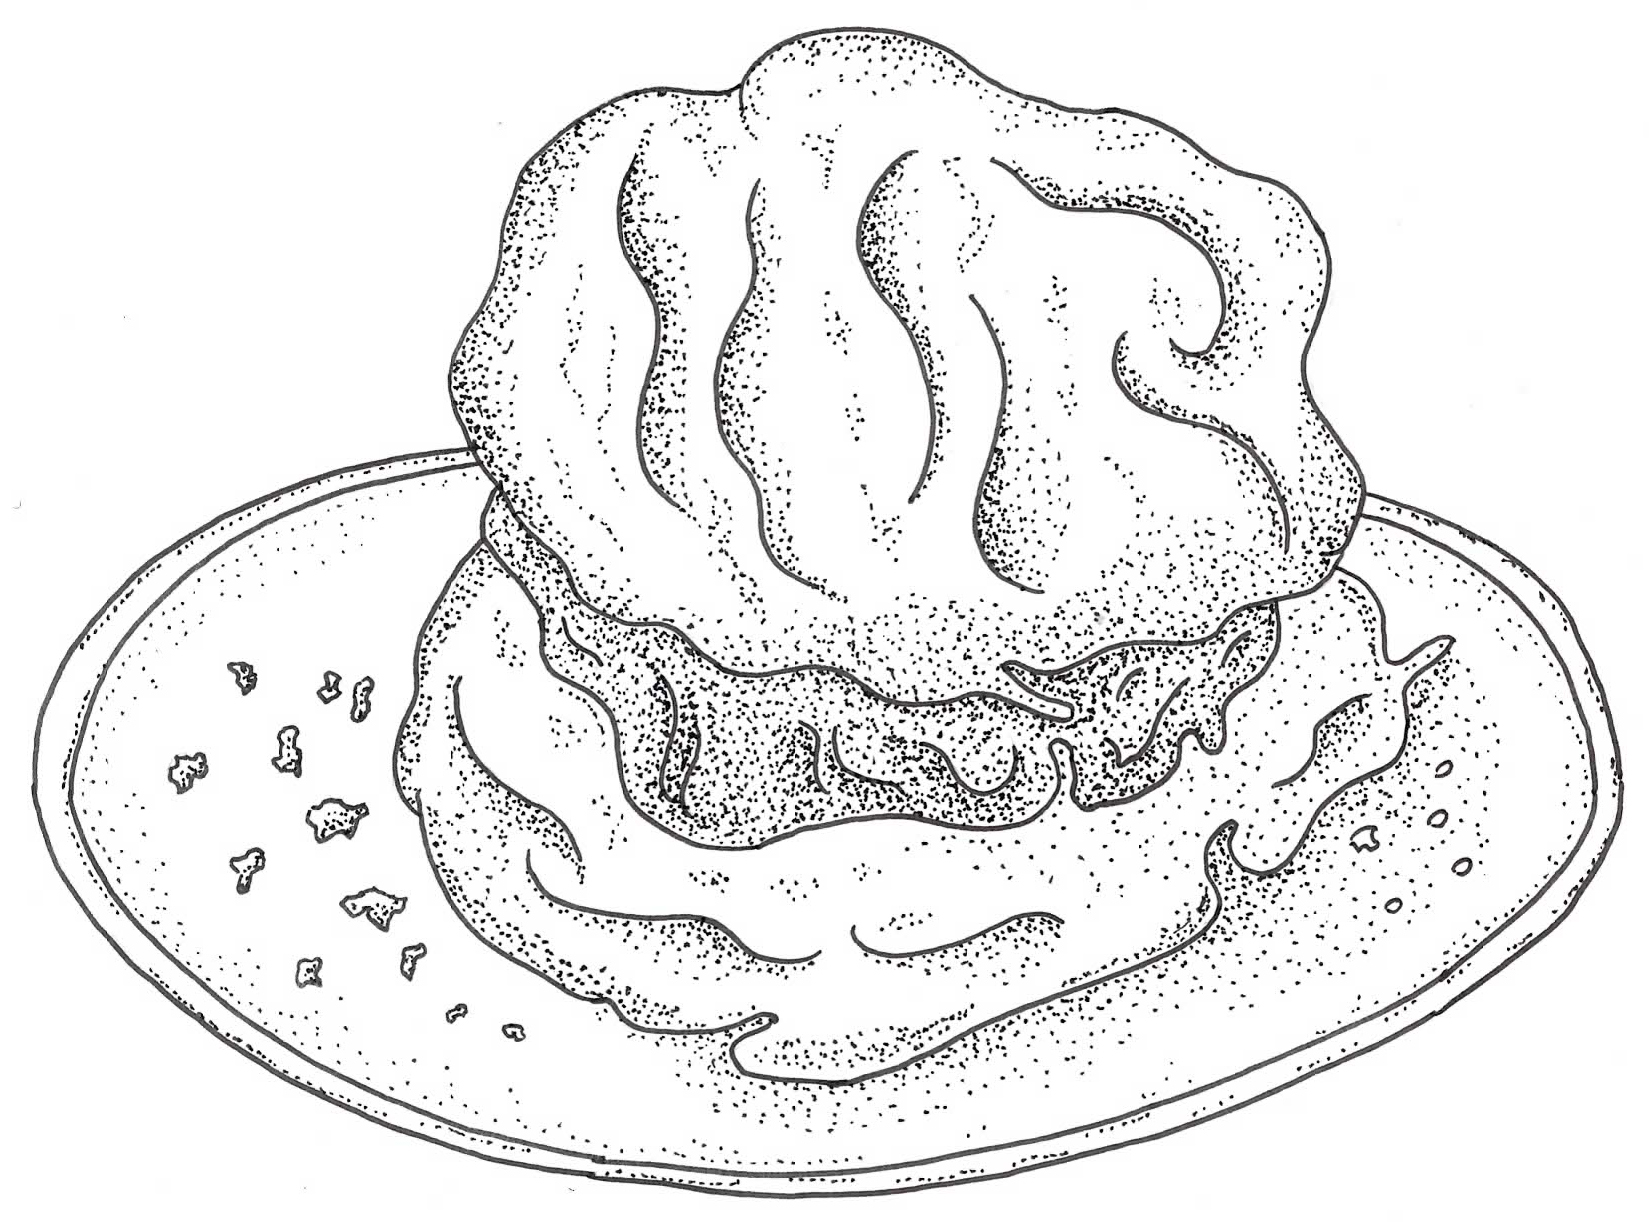 Cathead Biscuit Illustration